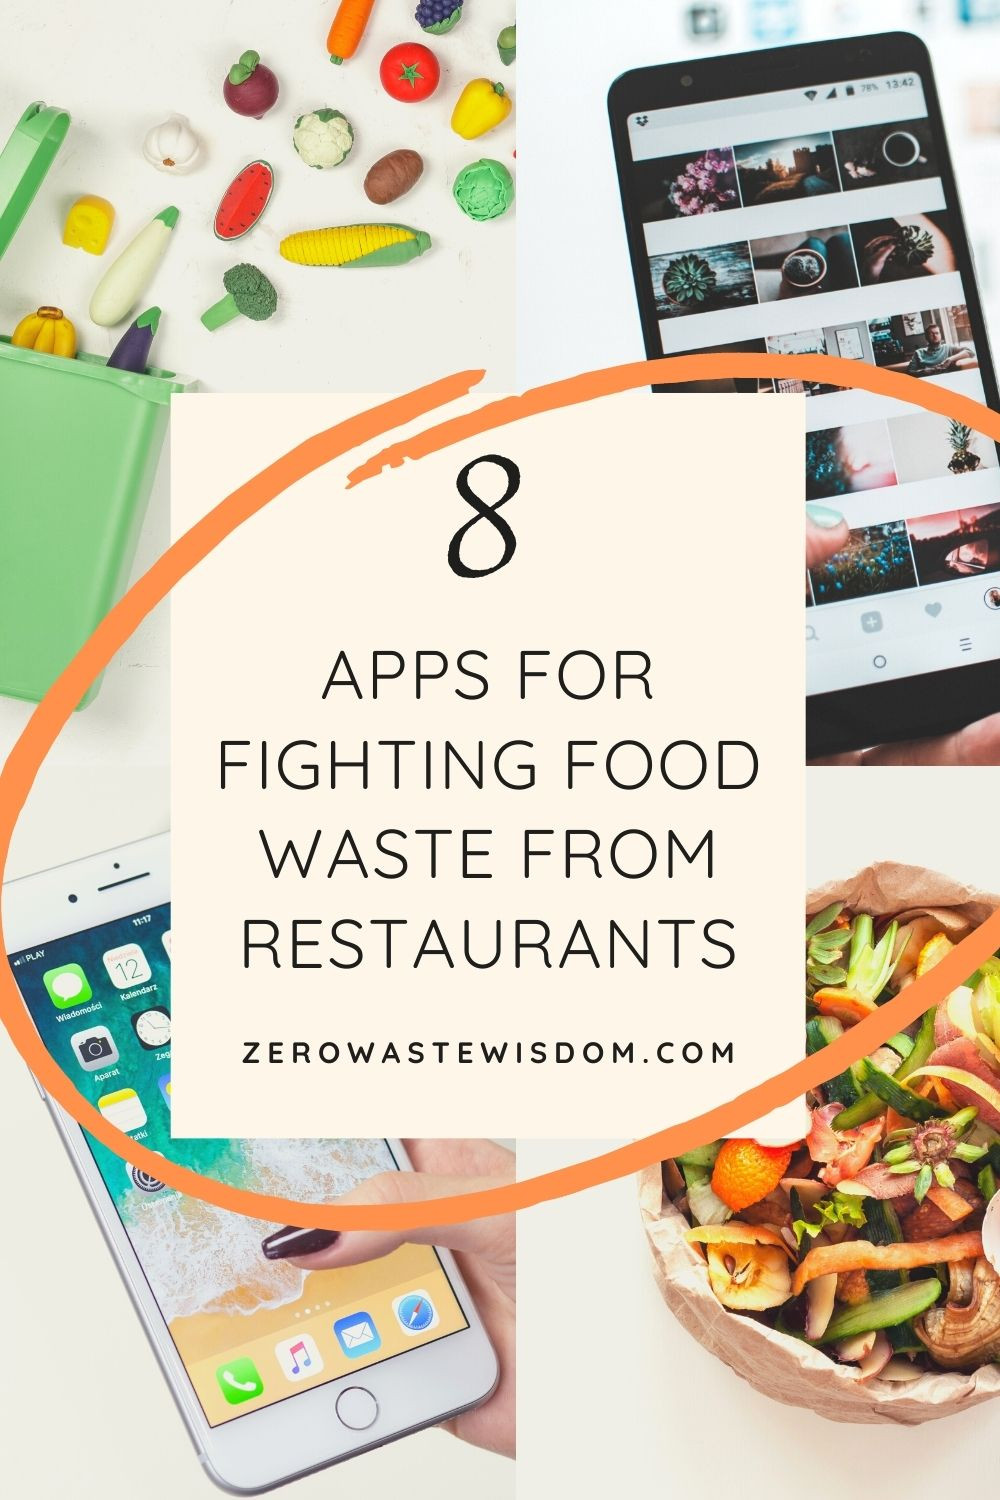 Apps for fighting food waste from restaurants Pinterest Pins